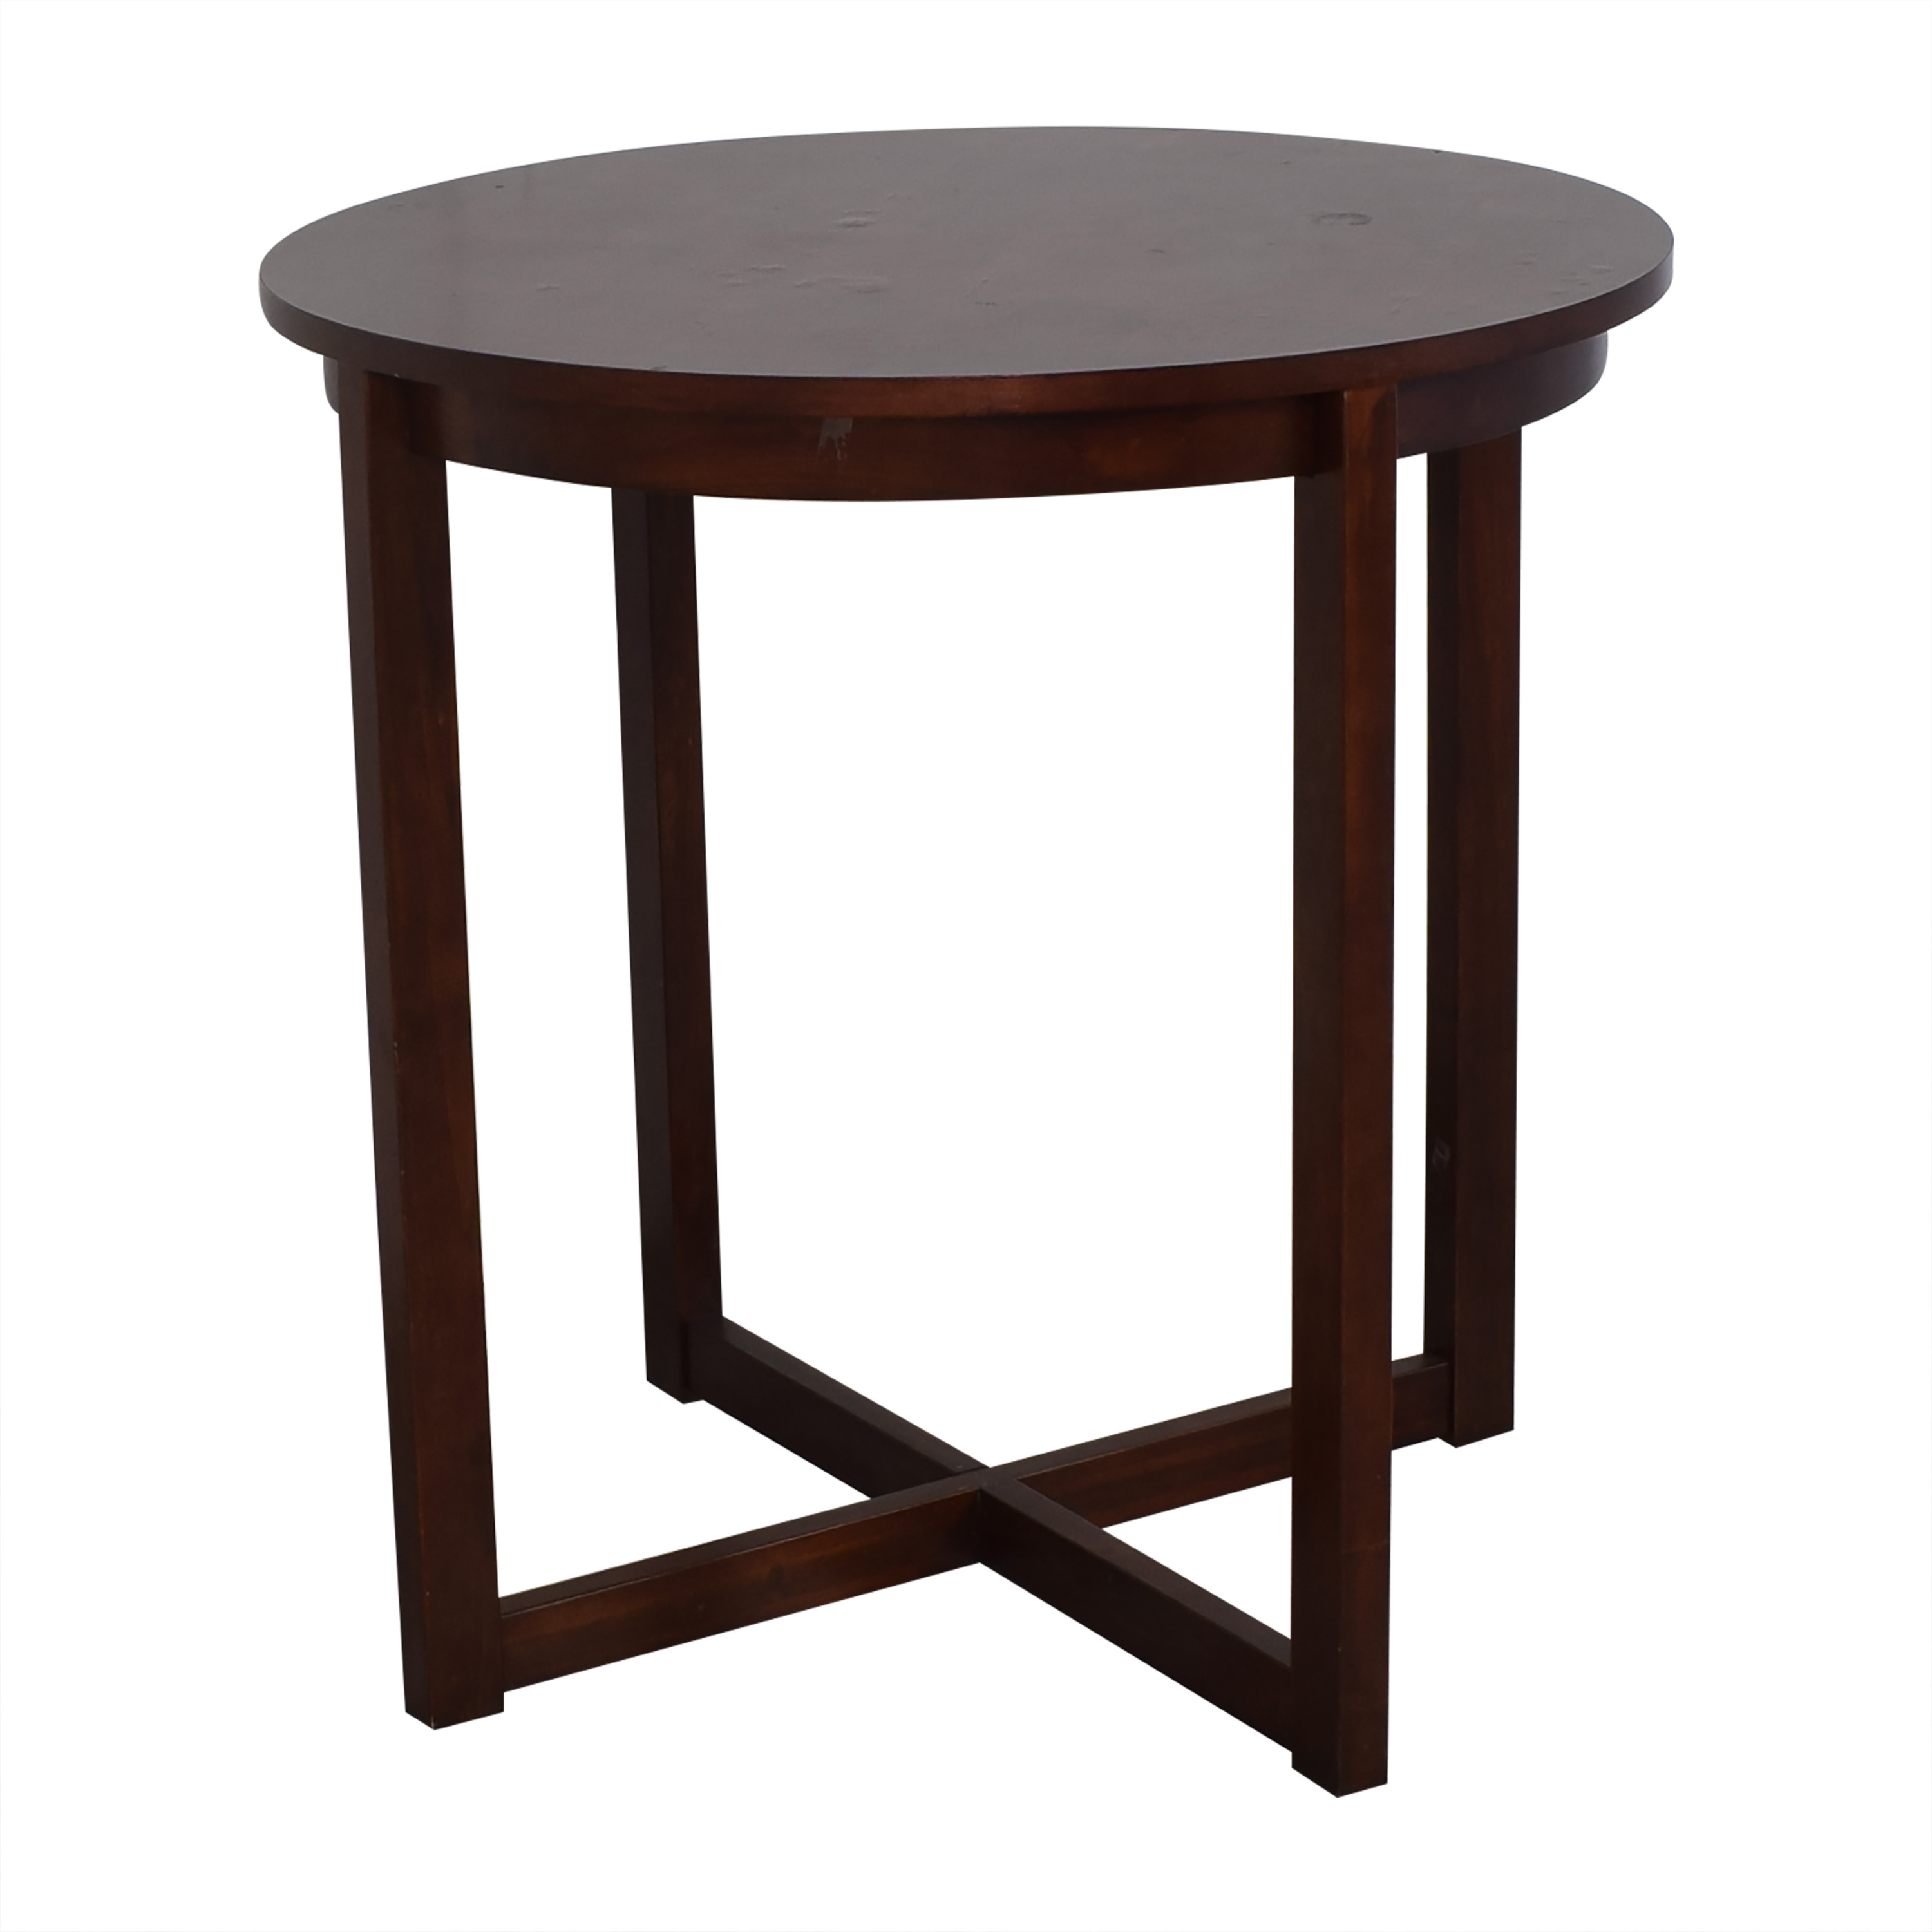 Raymour & Flanigan Raymour & Flanigan Round Table and Stools Tables